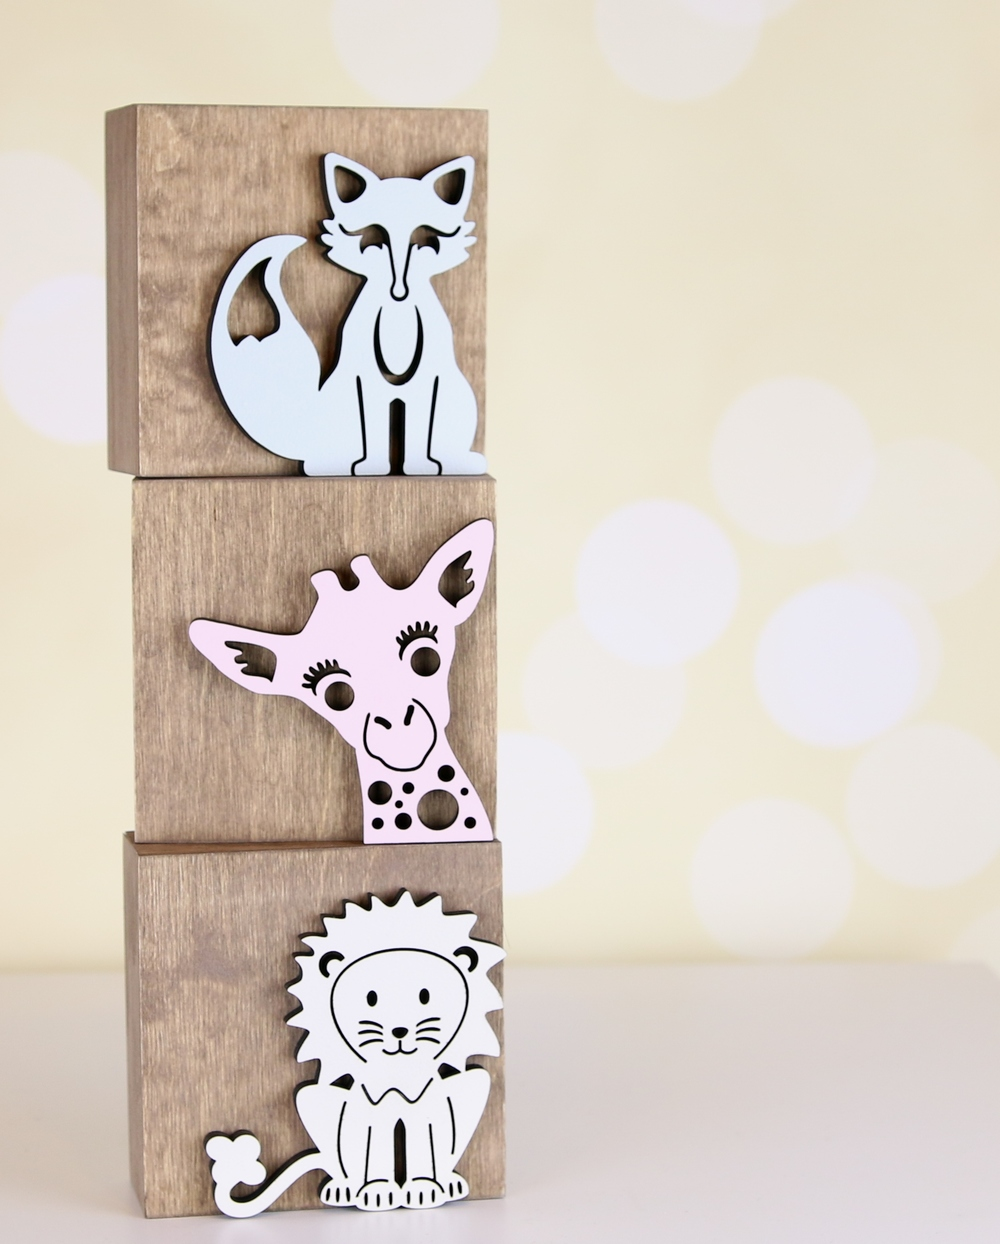 Urban Nest Decor_Woodland Animal Wall Decor Set_Nursery Decor_41.JPG